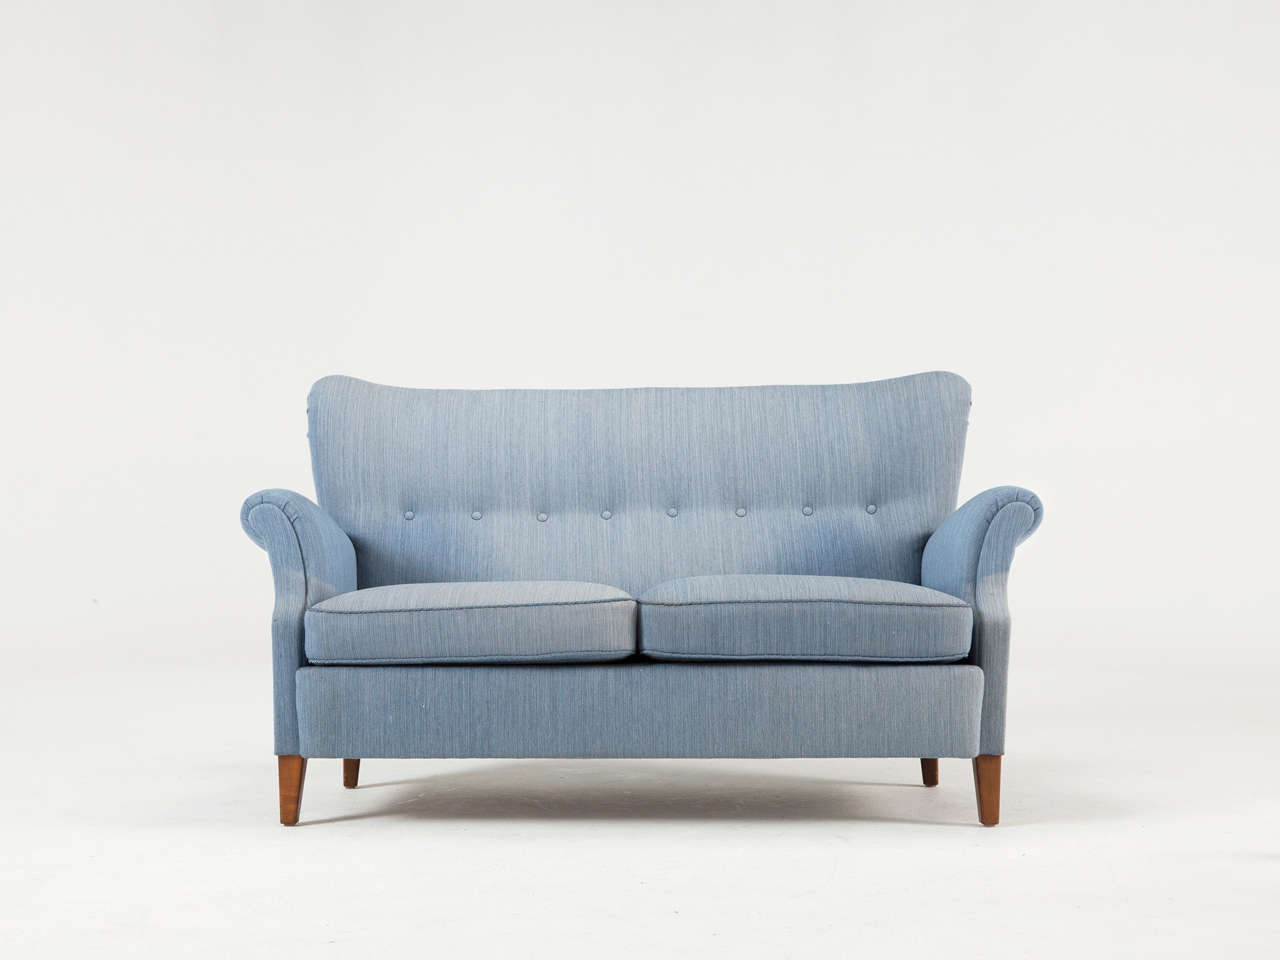 Swedish Blue Two-Seat Sofa, 1950s For Sale at 1stdibs